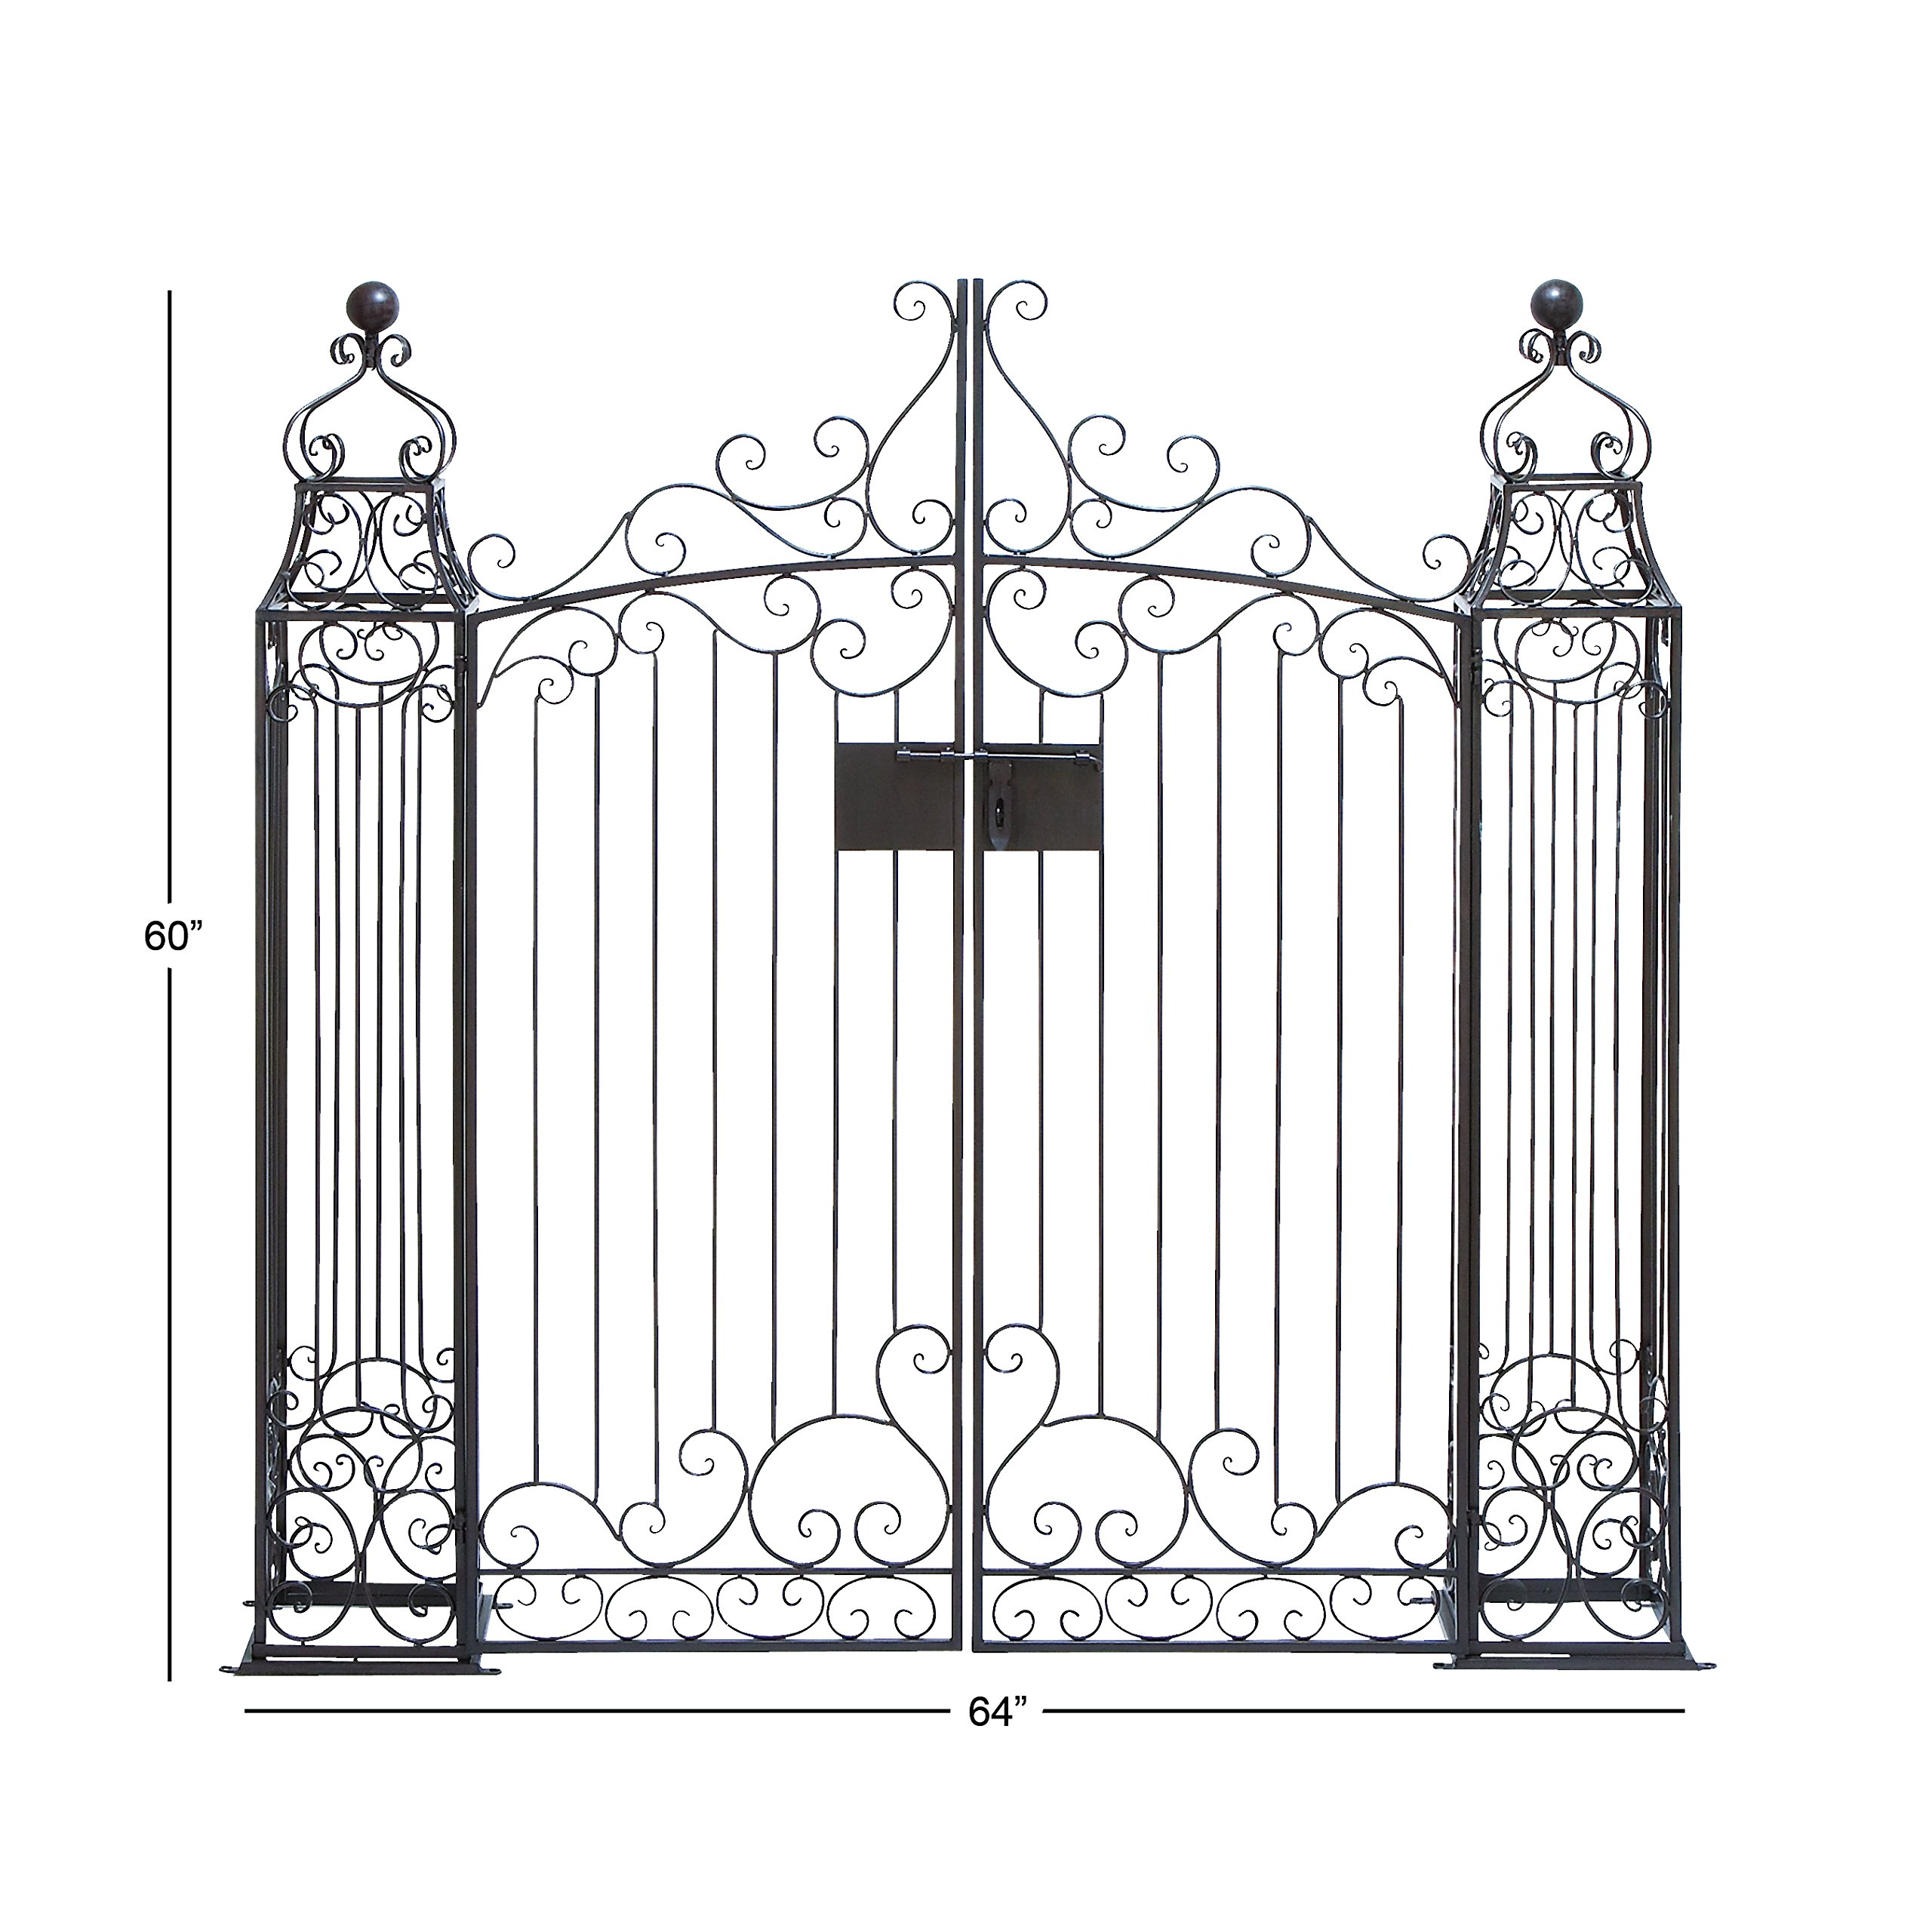 Deco 79 41391 Metal Garden Gate, 64 by 60-Inch by Deco 79